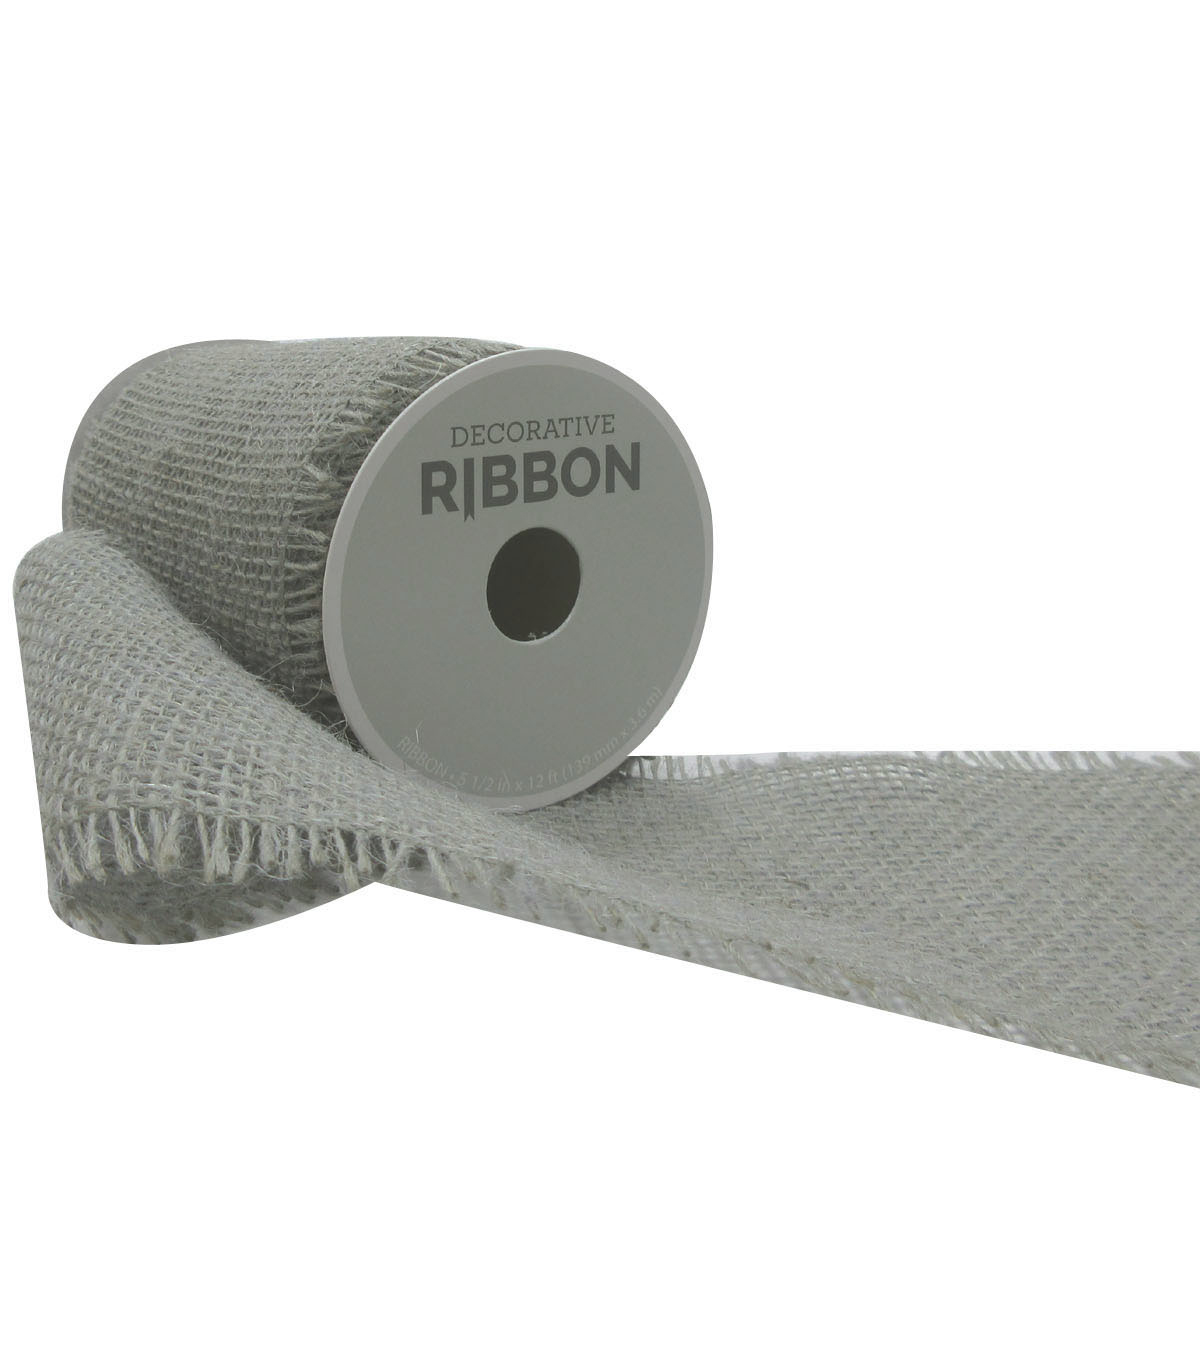 Decorative Ribbon 5.5\u0027\u0027x12\u0027 Brush Burlap-Gray